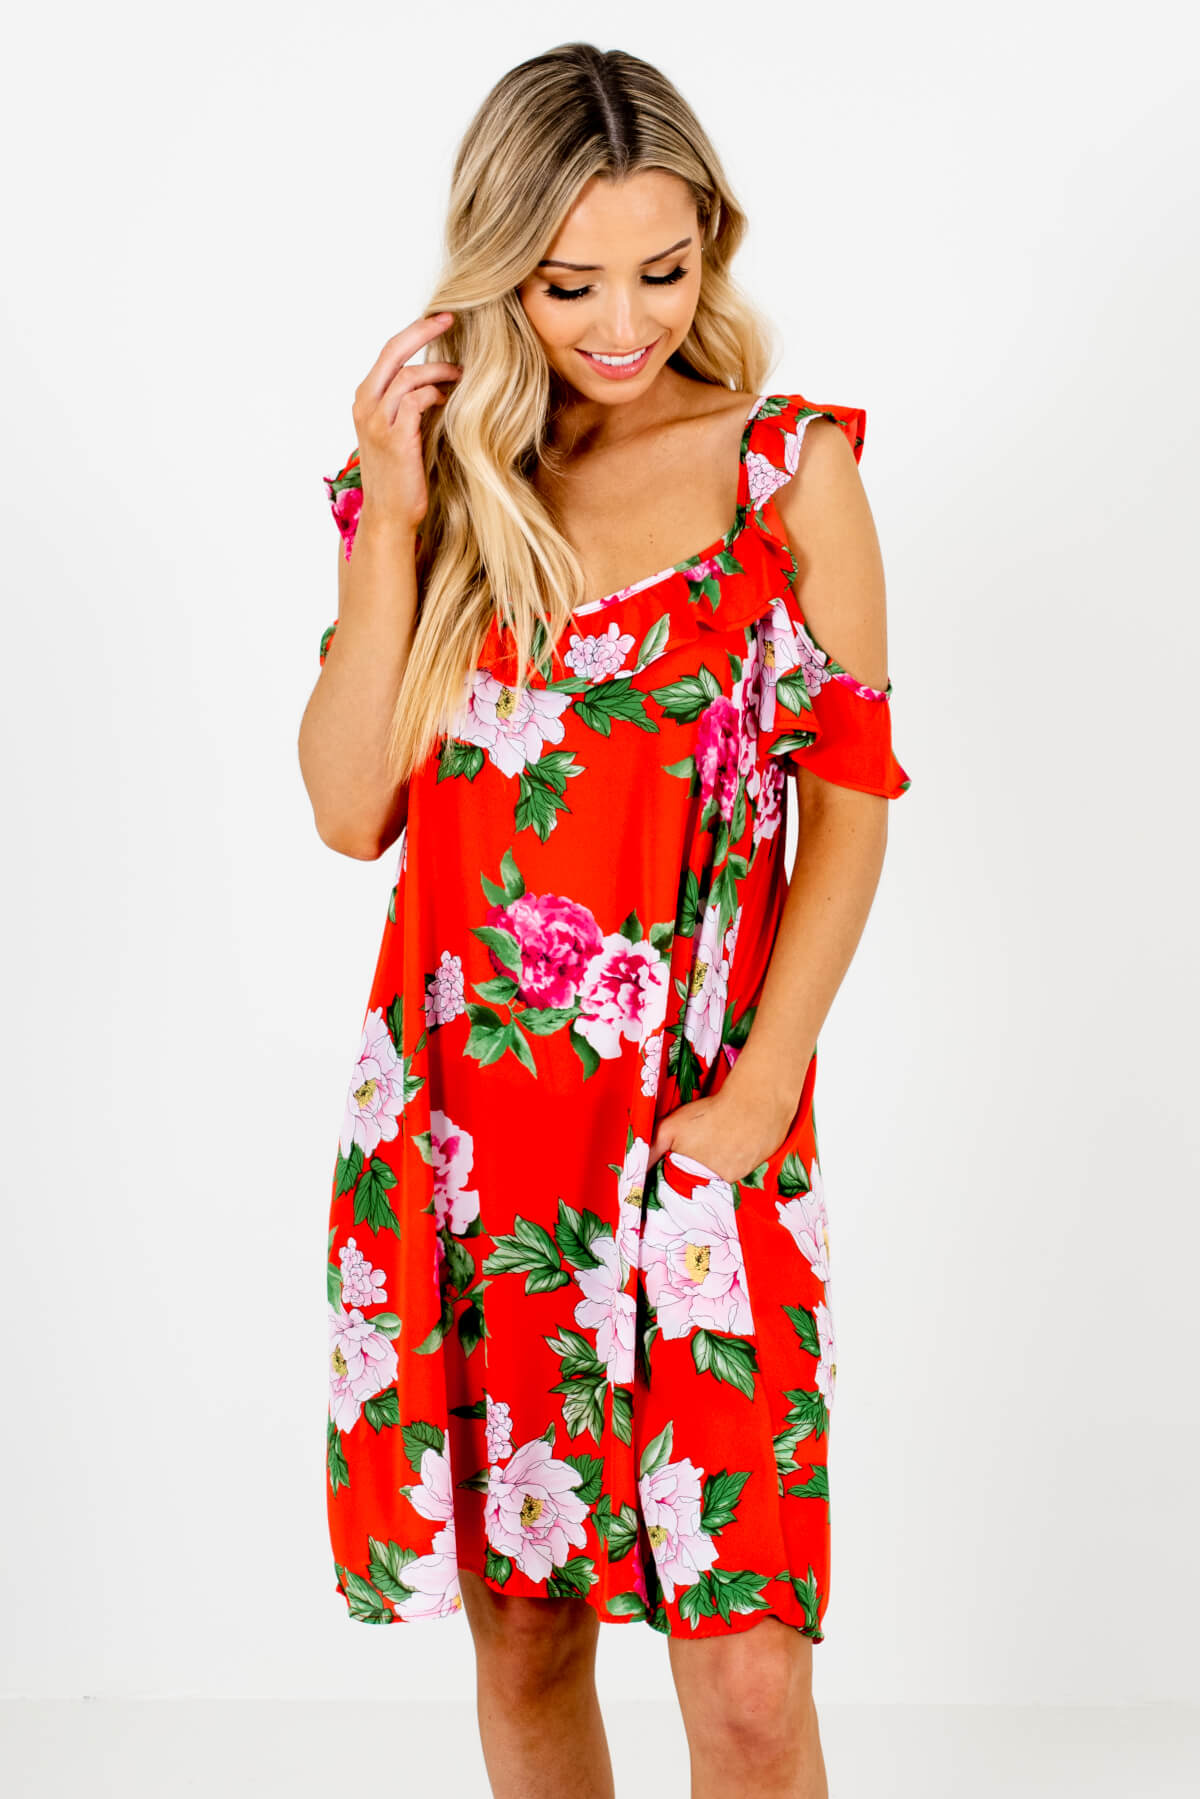 Red Orange Multicolored Floral Patterned Boutique Knee-Length Dresses for Women